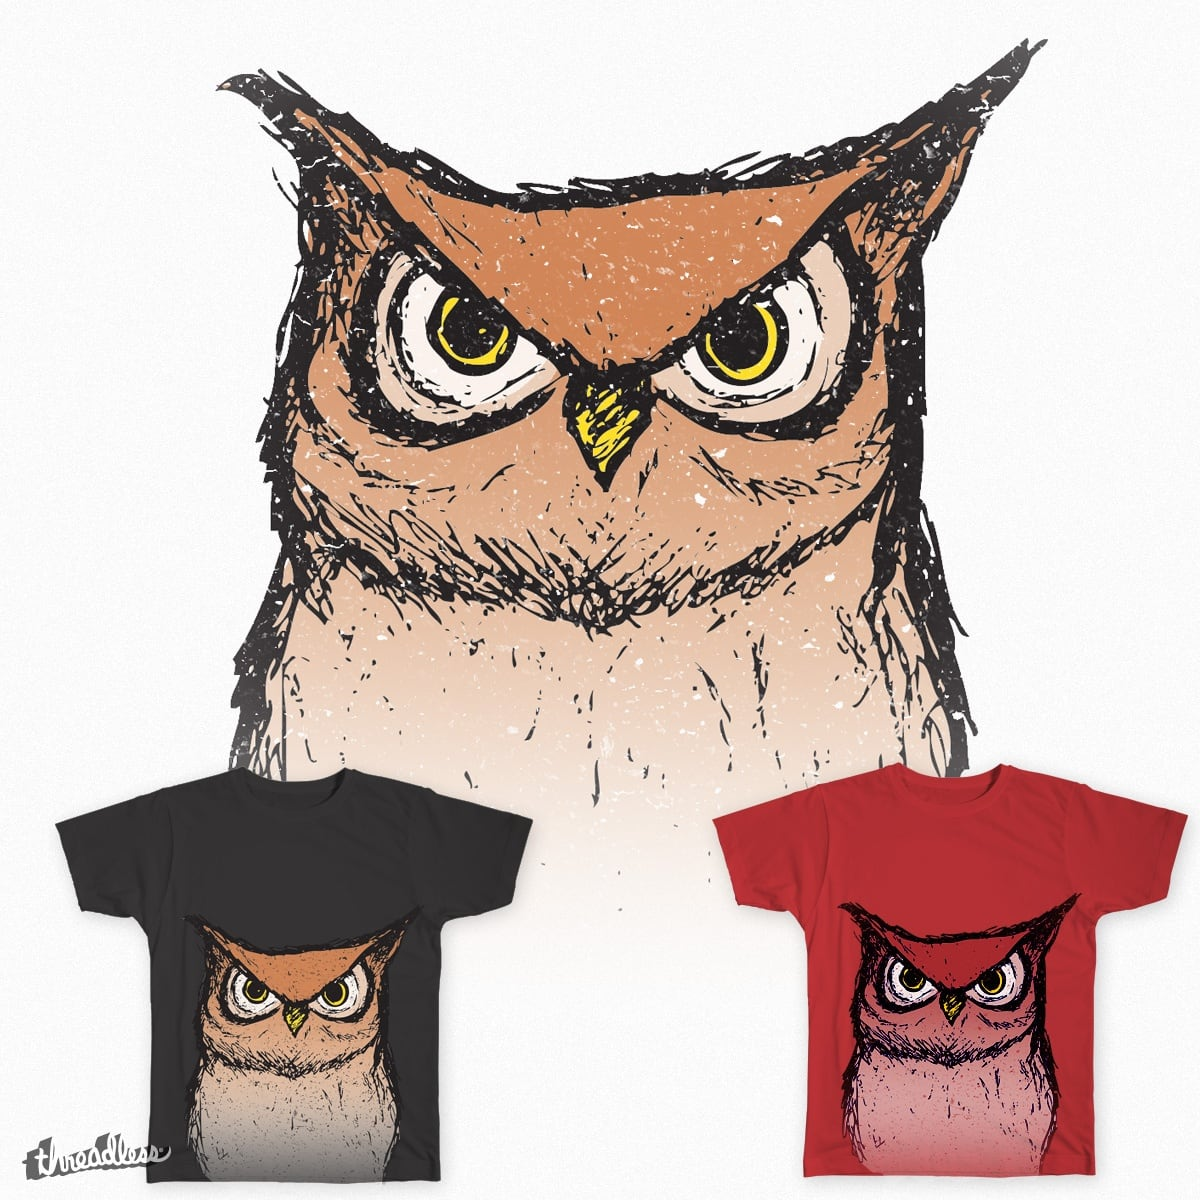 Hoo are you lookin' at? by Sparrow_11 on Threadless